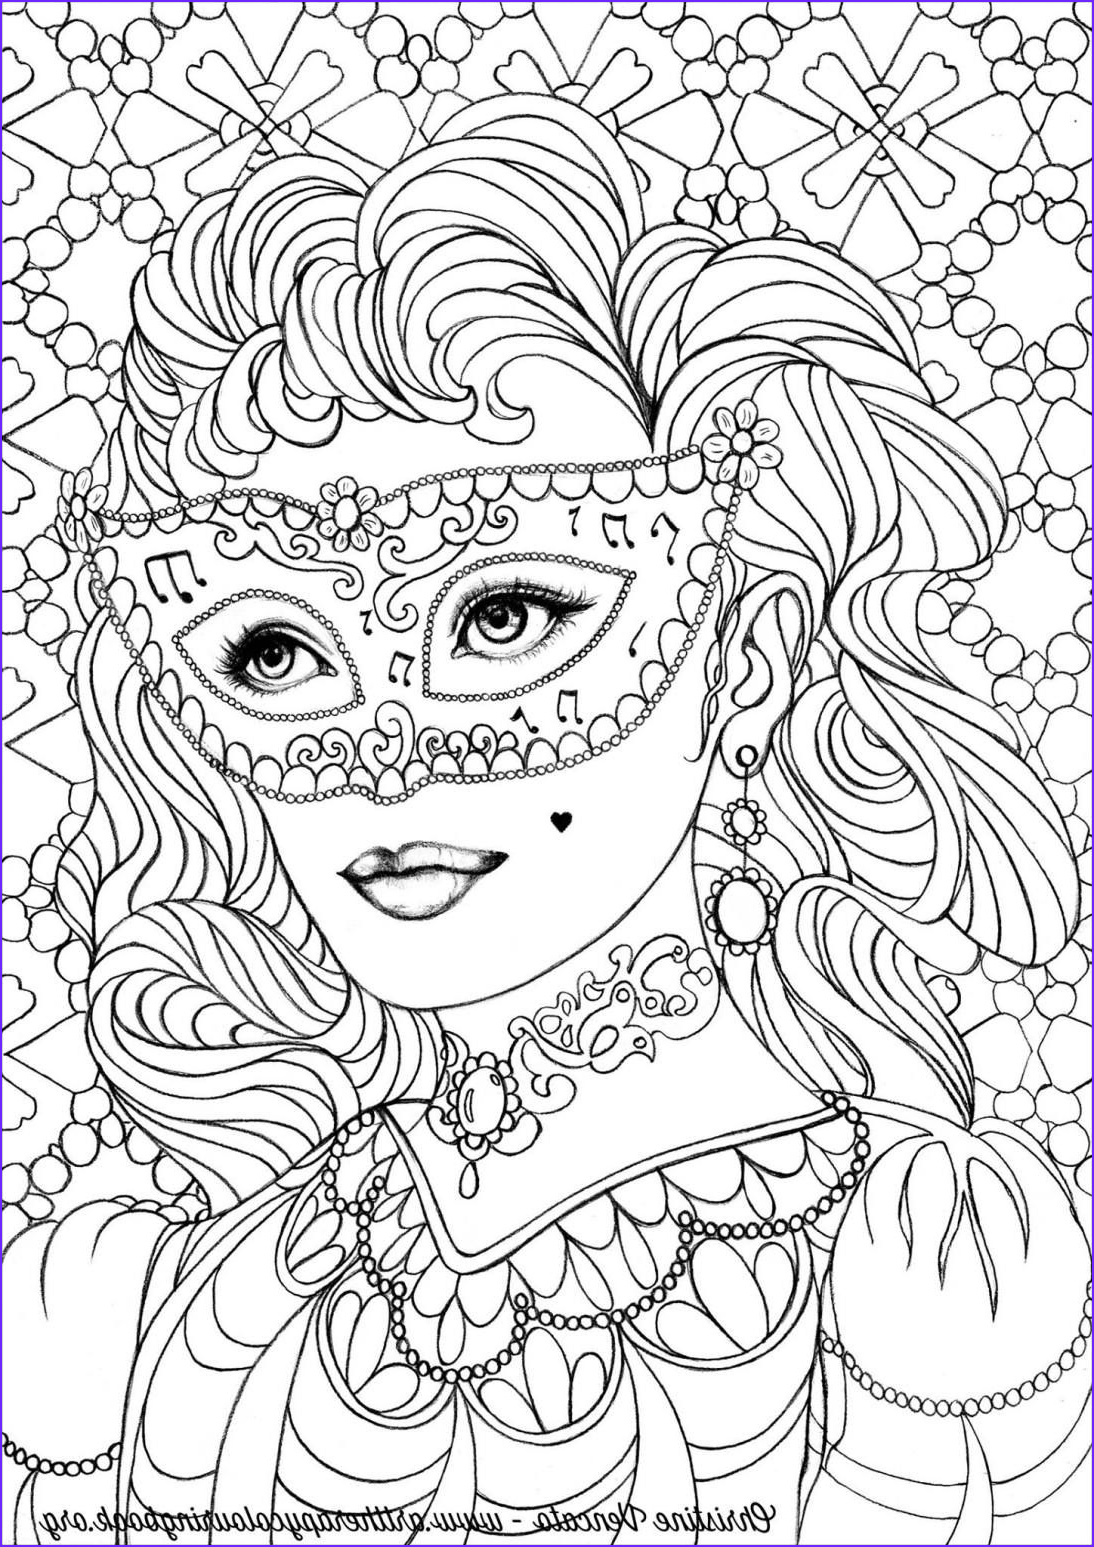 Printable Coloring Page Awesome Photography Free Coloring Page From Adult Coloring Worldwide Art by